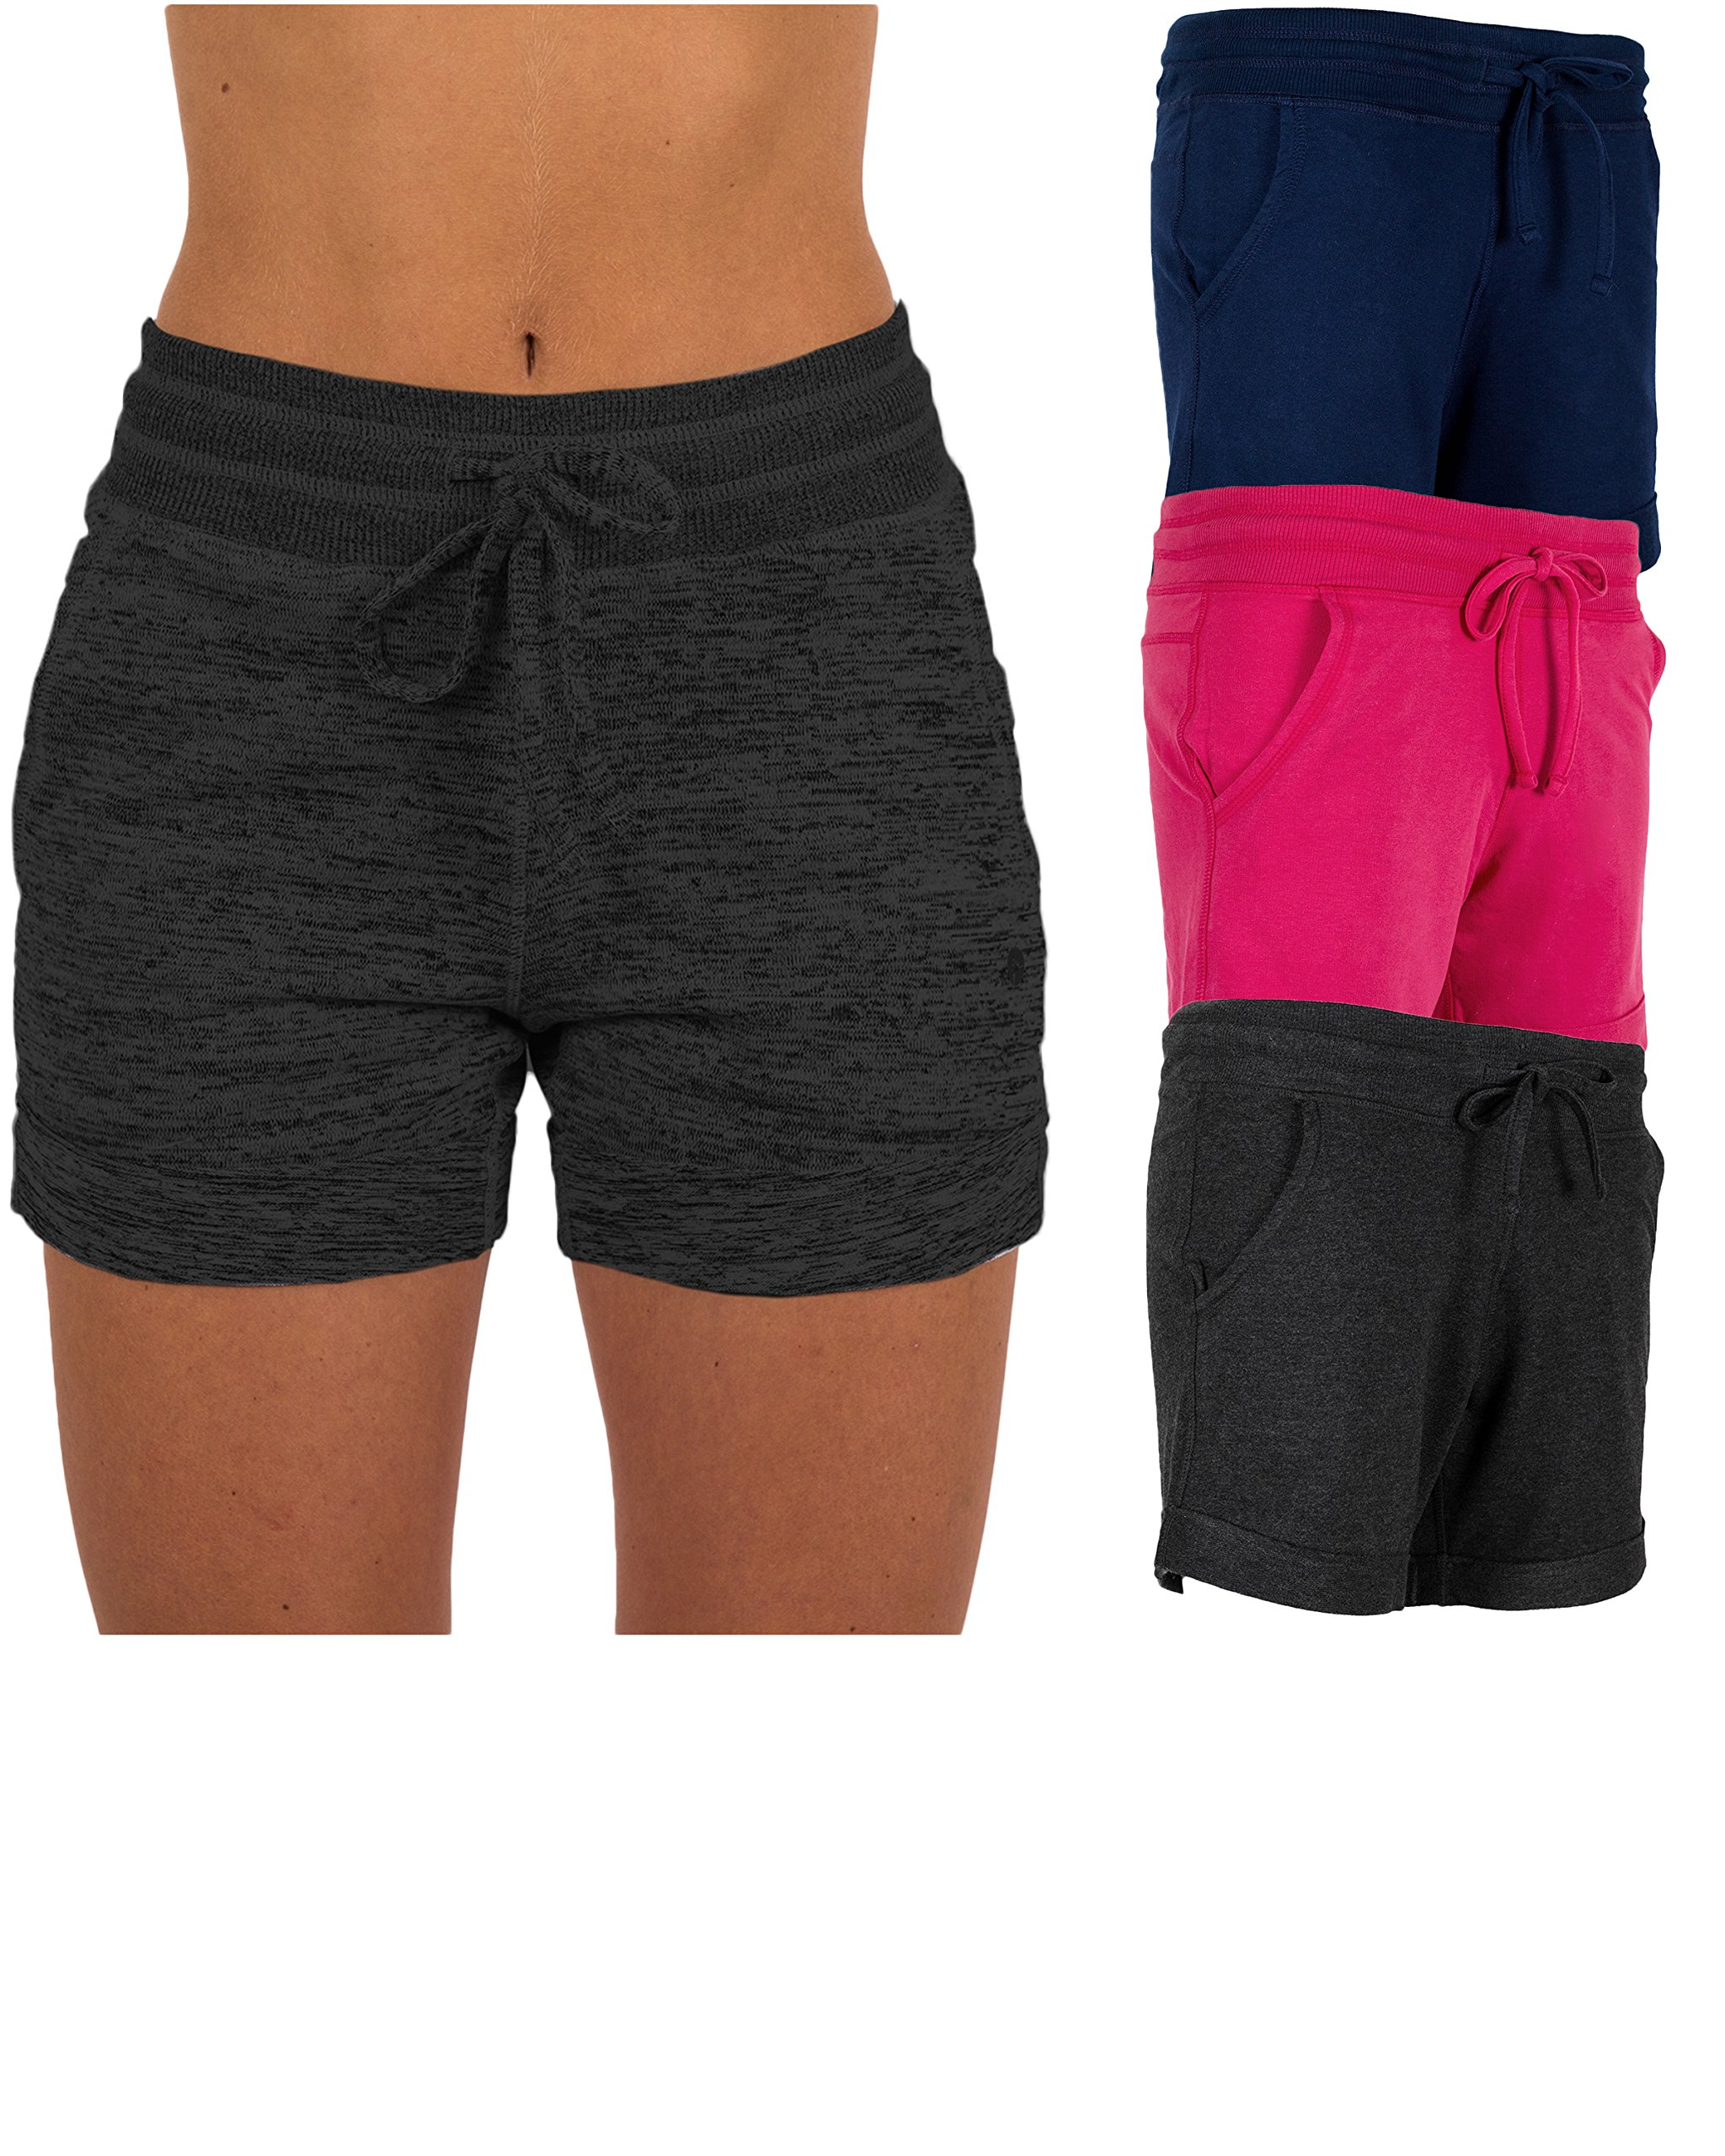 Sexy Basics Women's 3 Pack Active Wear Lounge Yoga Gym Casual Sport Shorts (3 Pack -Navy/Charcoal/Pink, X-Large)